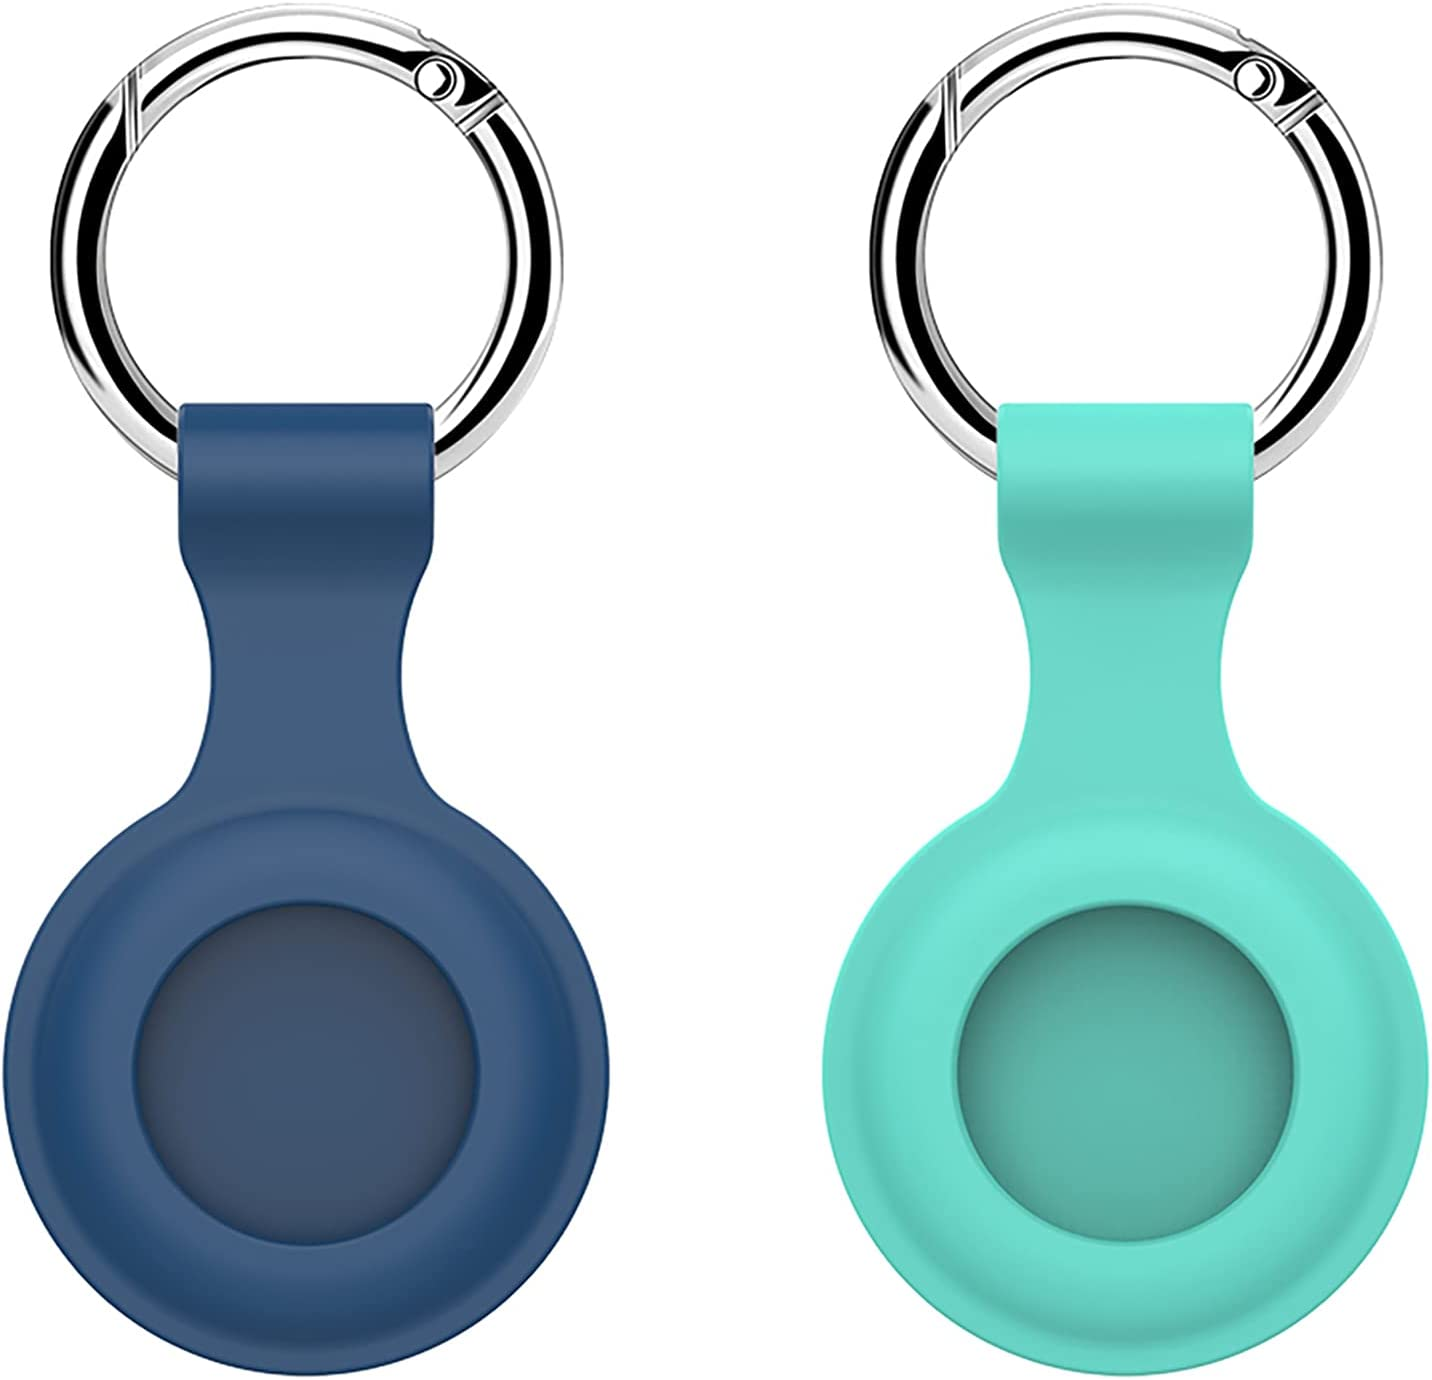 Case for Air Tag Airtag Silicone Protective Cover with Keychain Compatible for Apple iPhone Finder Location Tracker Best Gift for Kids Boys Girls Teens Elderly Pets Dogs Cats Grey Blue & Teal Blue